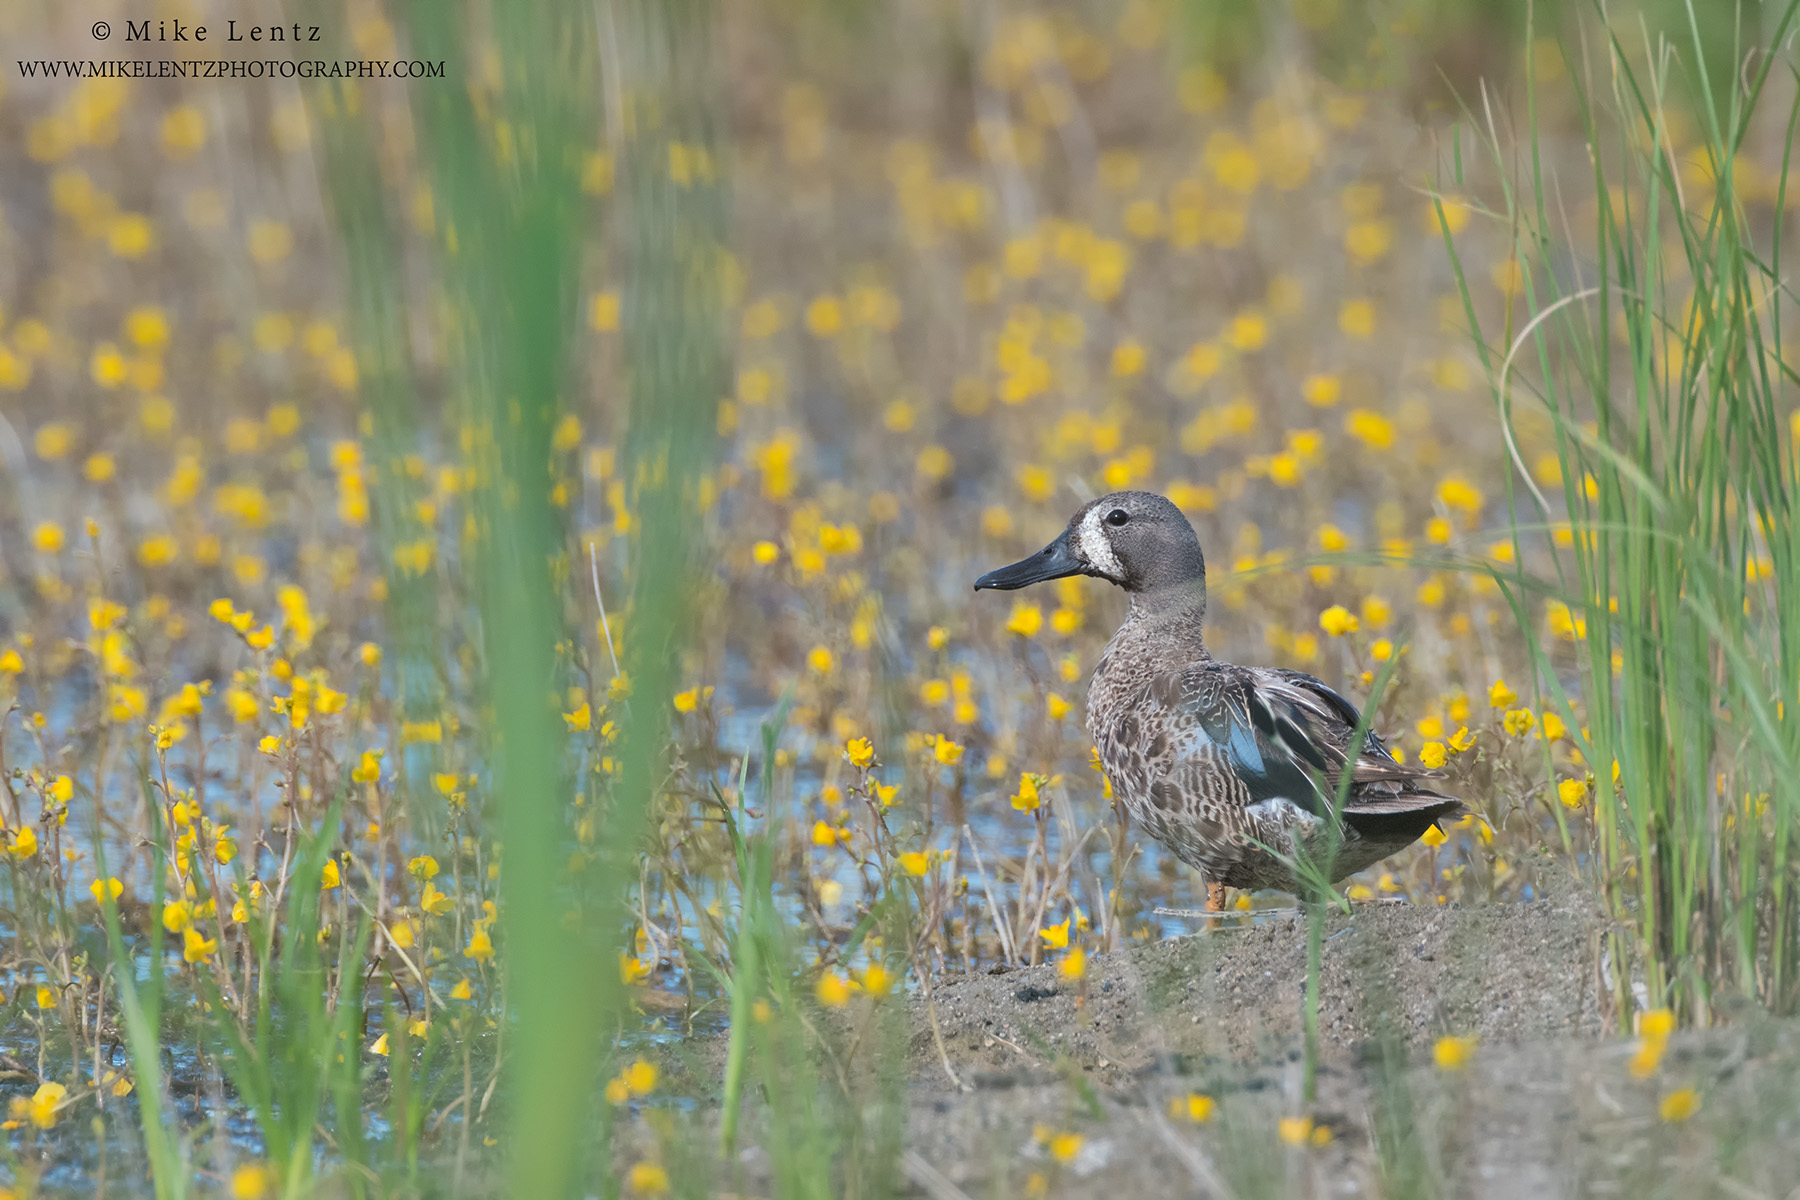 Blue-winged teal in yellow swamp flowersPS2